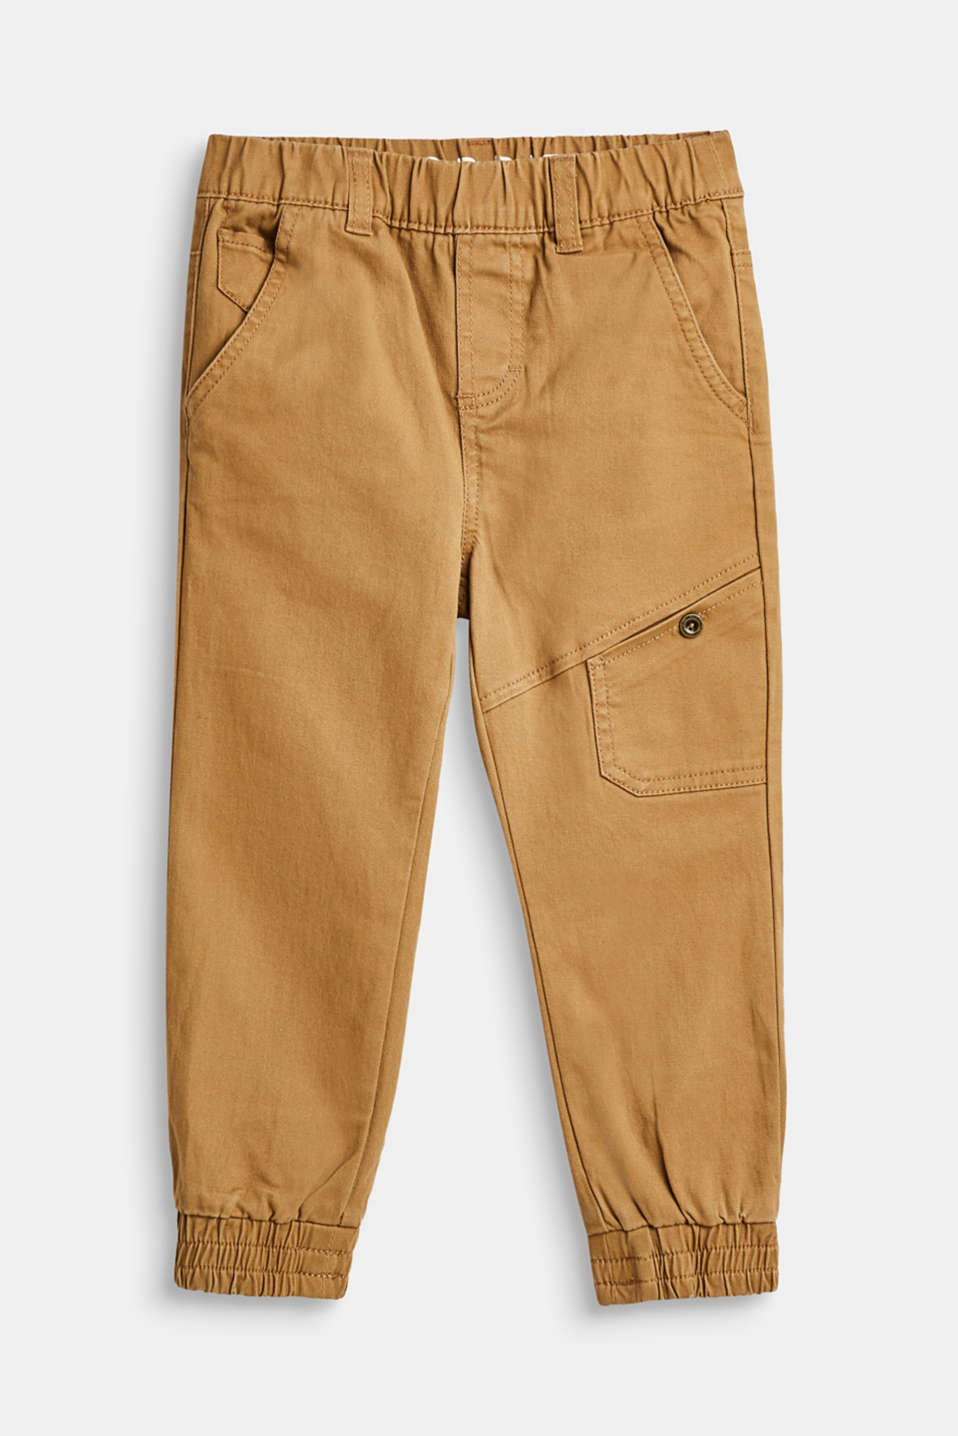 Esprit - Cargo-style trousers in stretch cotton